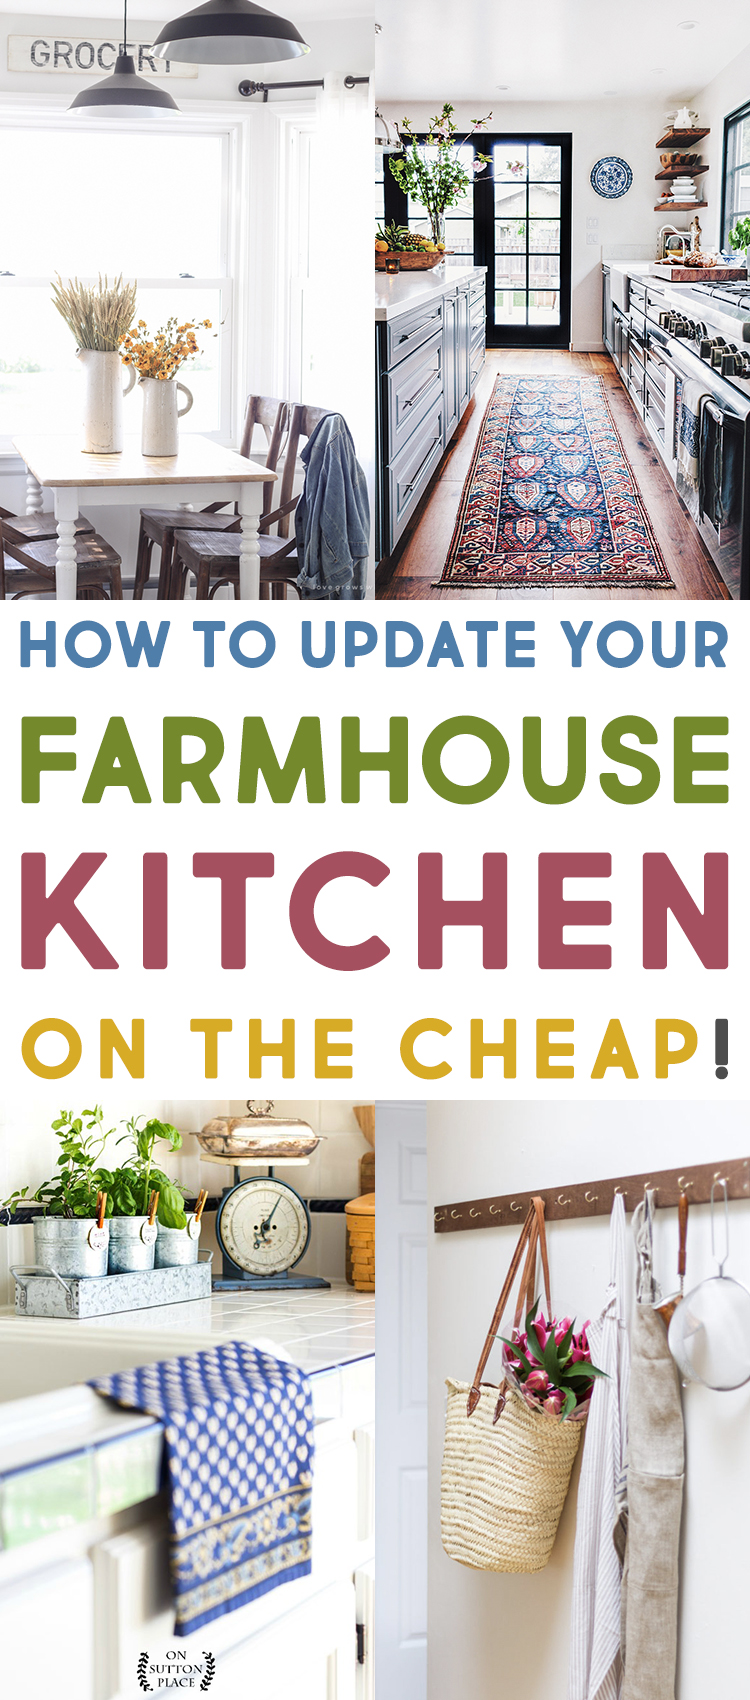 How To Update Your Farmhouse Kitchen On The Cheap The Cottage Market,Emilia Clarke Game Of Thrones Meme